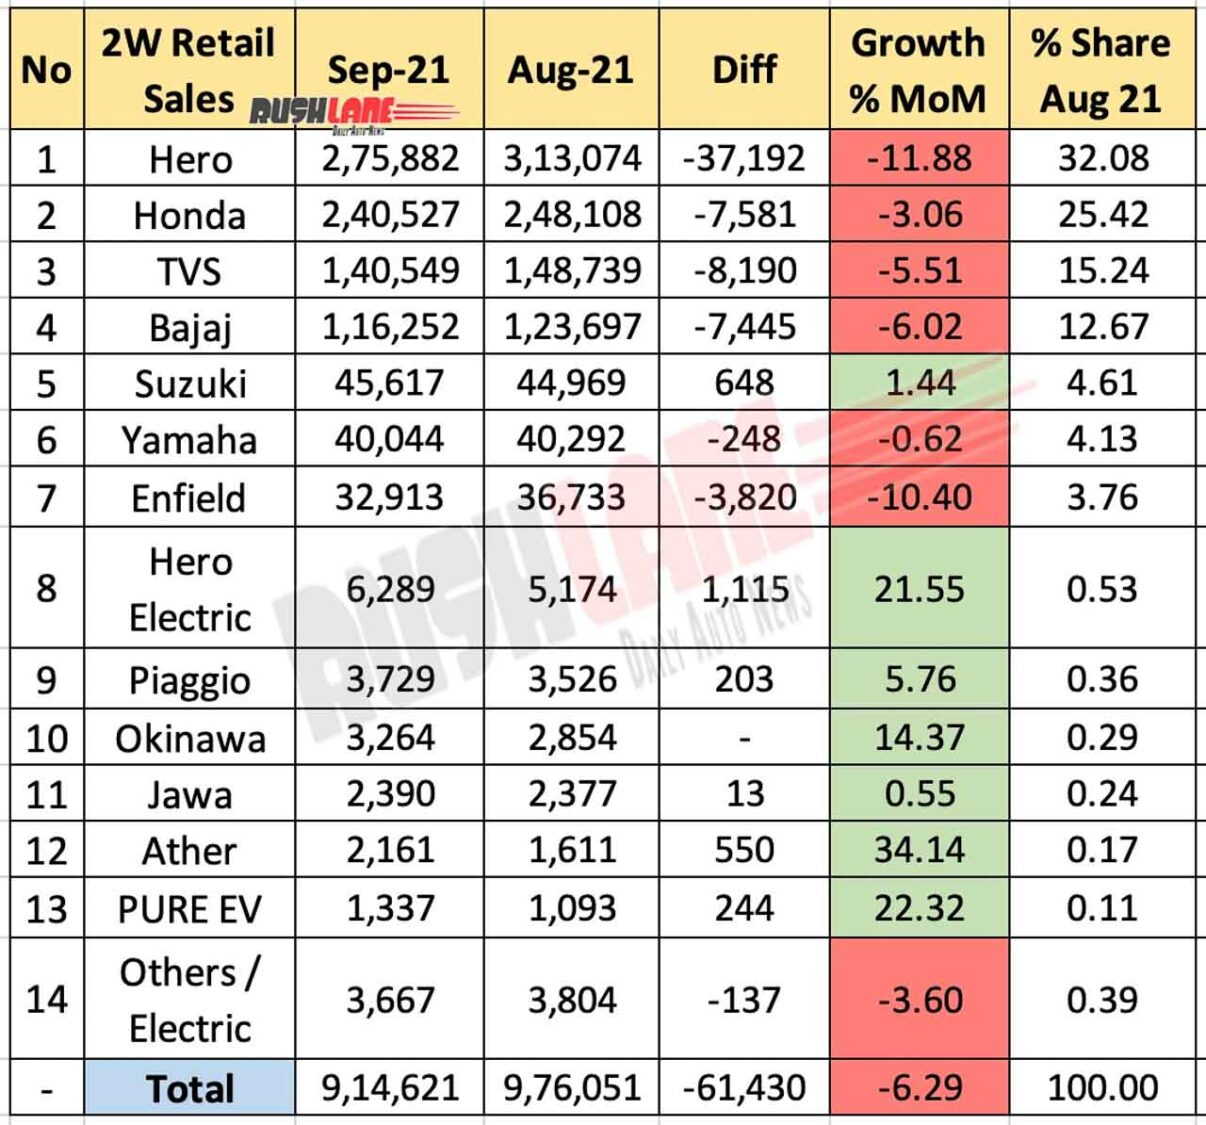 Retail sales of two-wheelers September 2021 vs August 2021 (MoM)